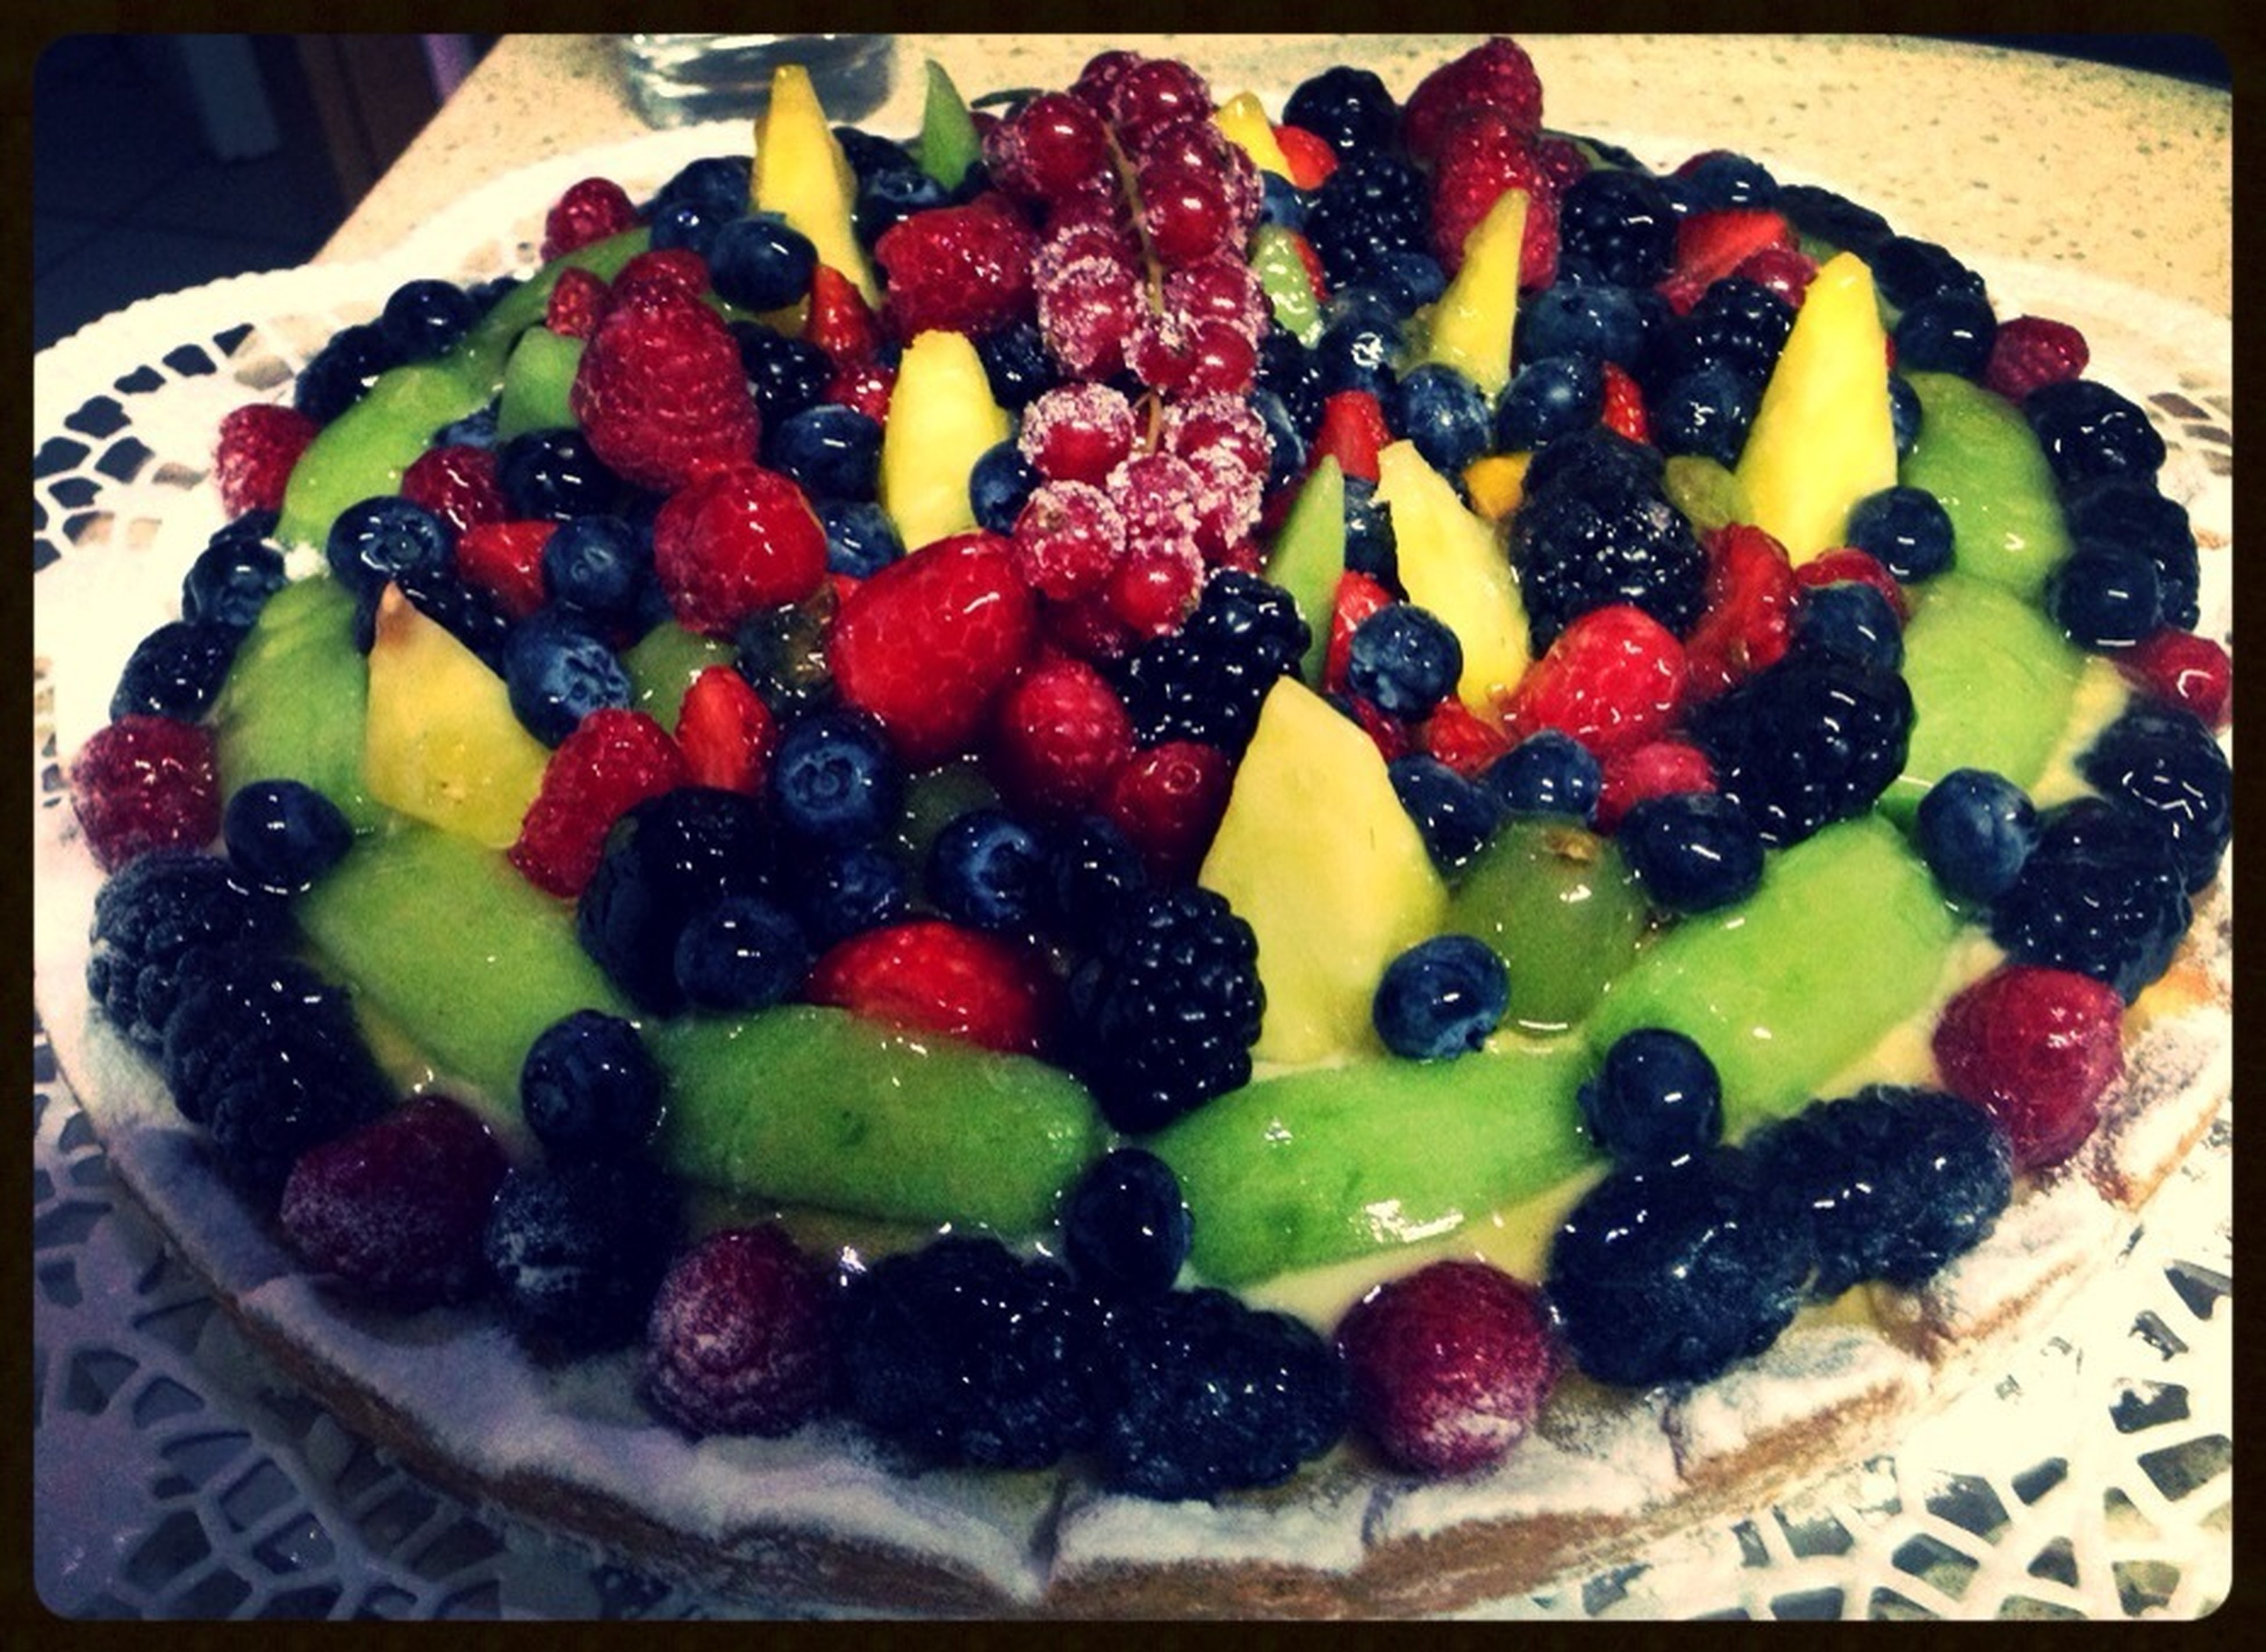 food and drink, food, freshness, indoors, sweet food, fruit, dessert, ready-to-eat, strawberry, indulgence, still life, raspberry, unhealthy eating, blueberry, berry fruit, plate, temptation, cake, close-up